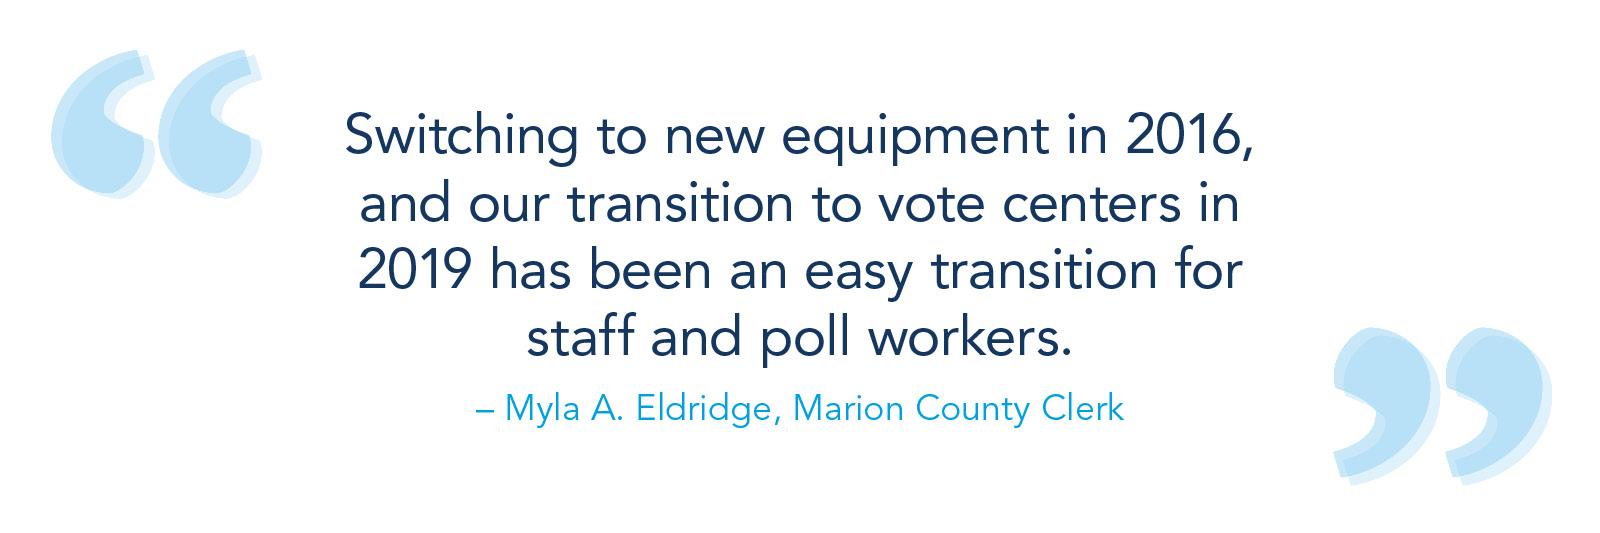 Switching to new equipment in 2016, and our transition to vote centers in 2019 has been an easy transition for staff and poll workers. – Myla A. Eldridge, Marion County clerk